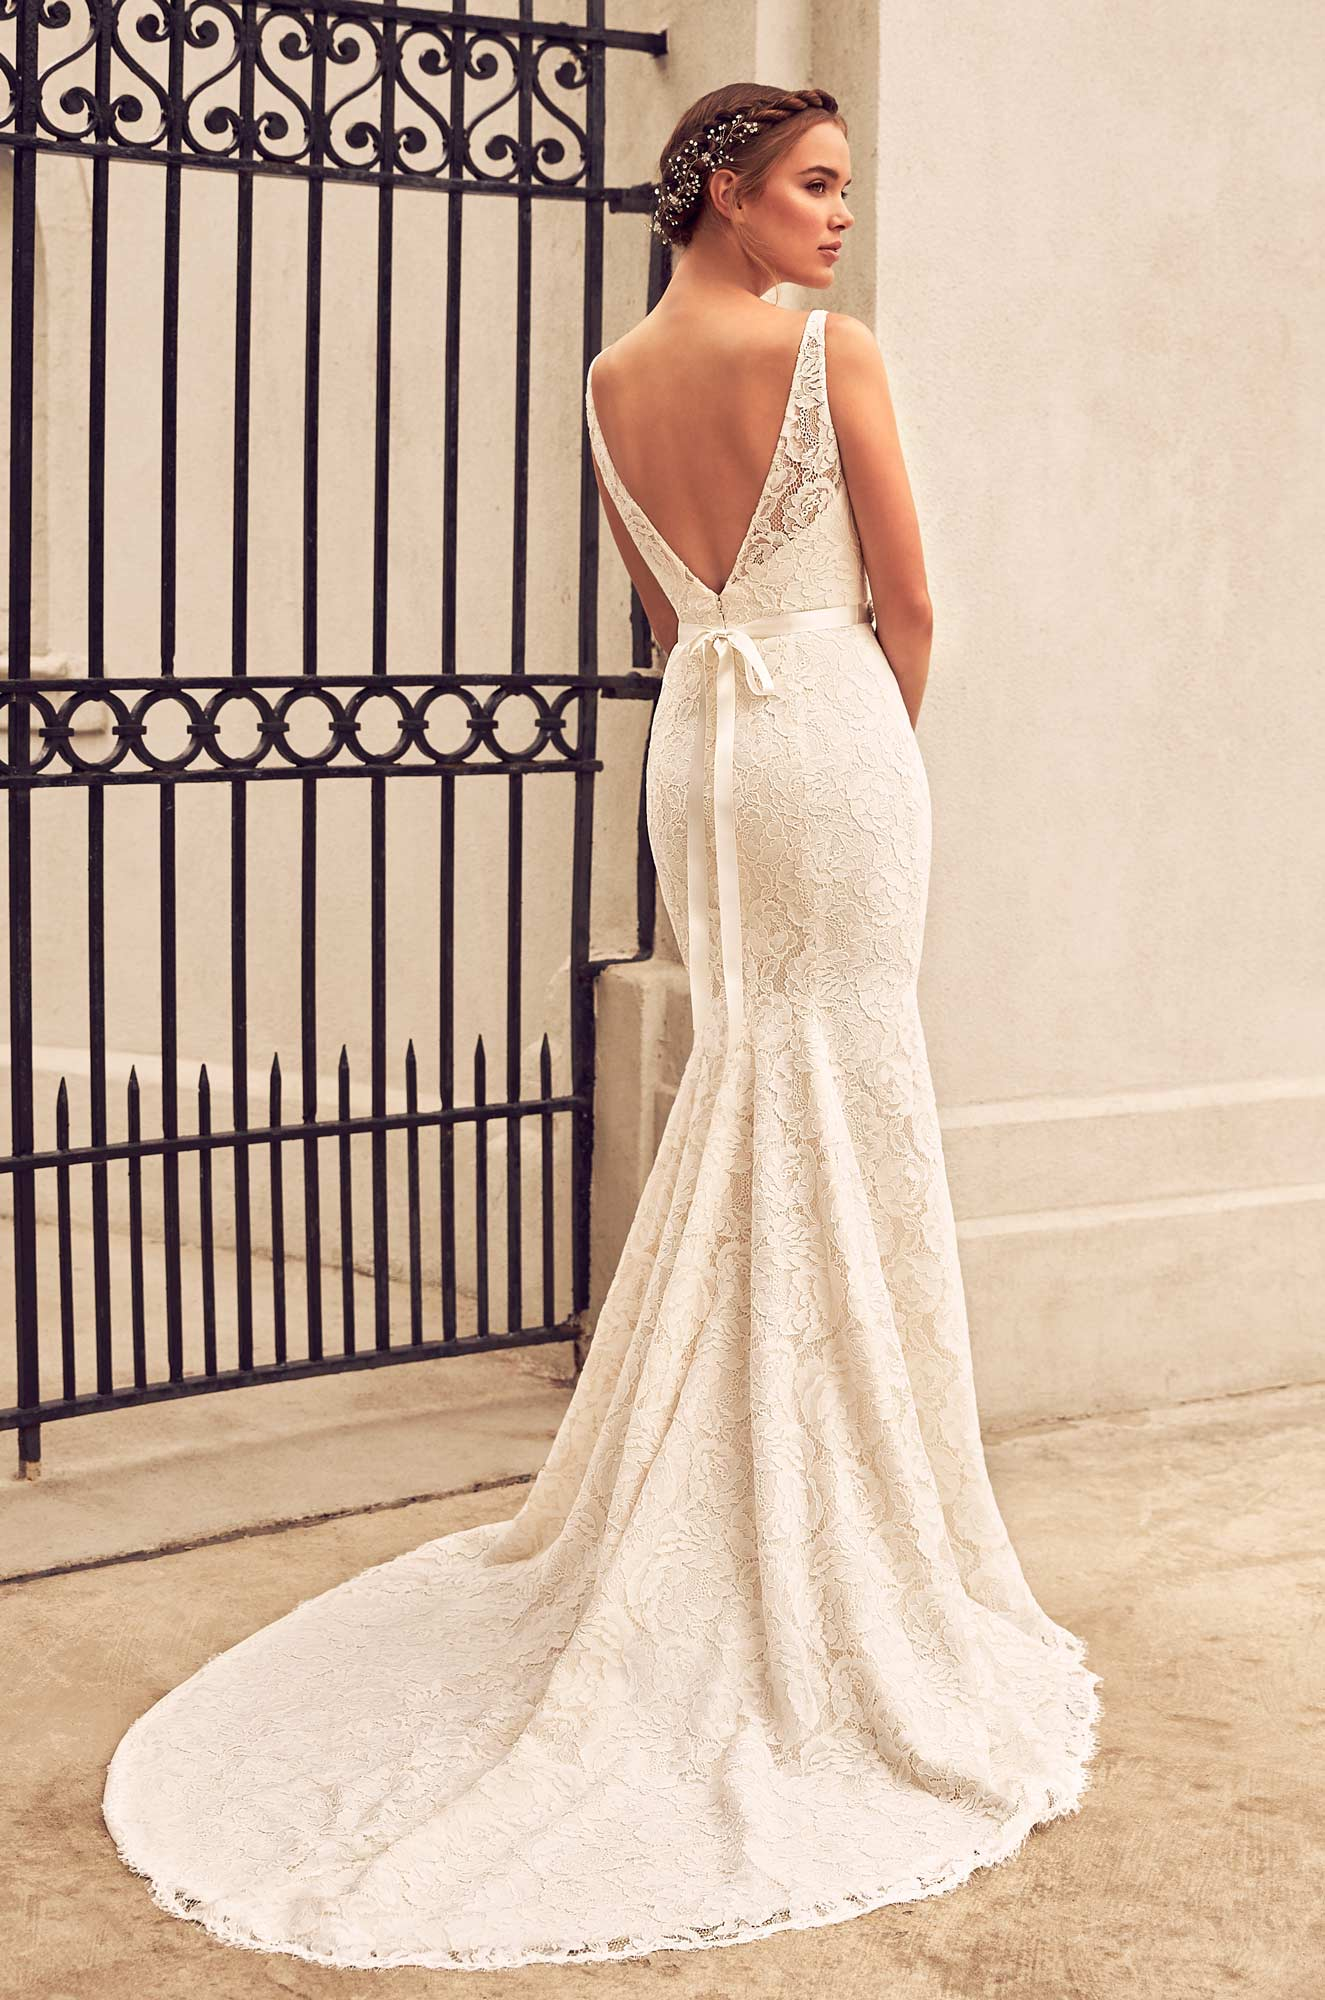 Split Front Lace Wedding Dress - Style #4791 | Paloma Blanca